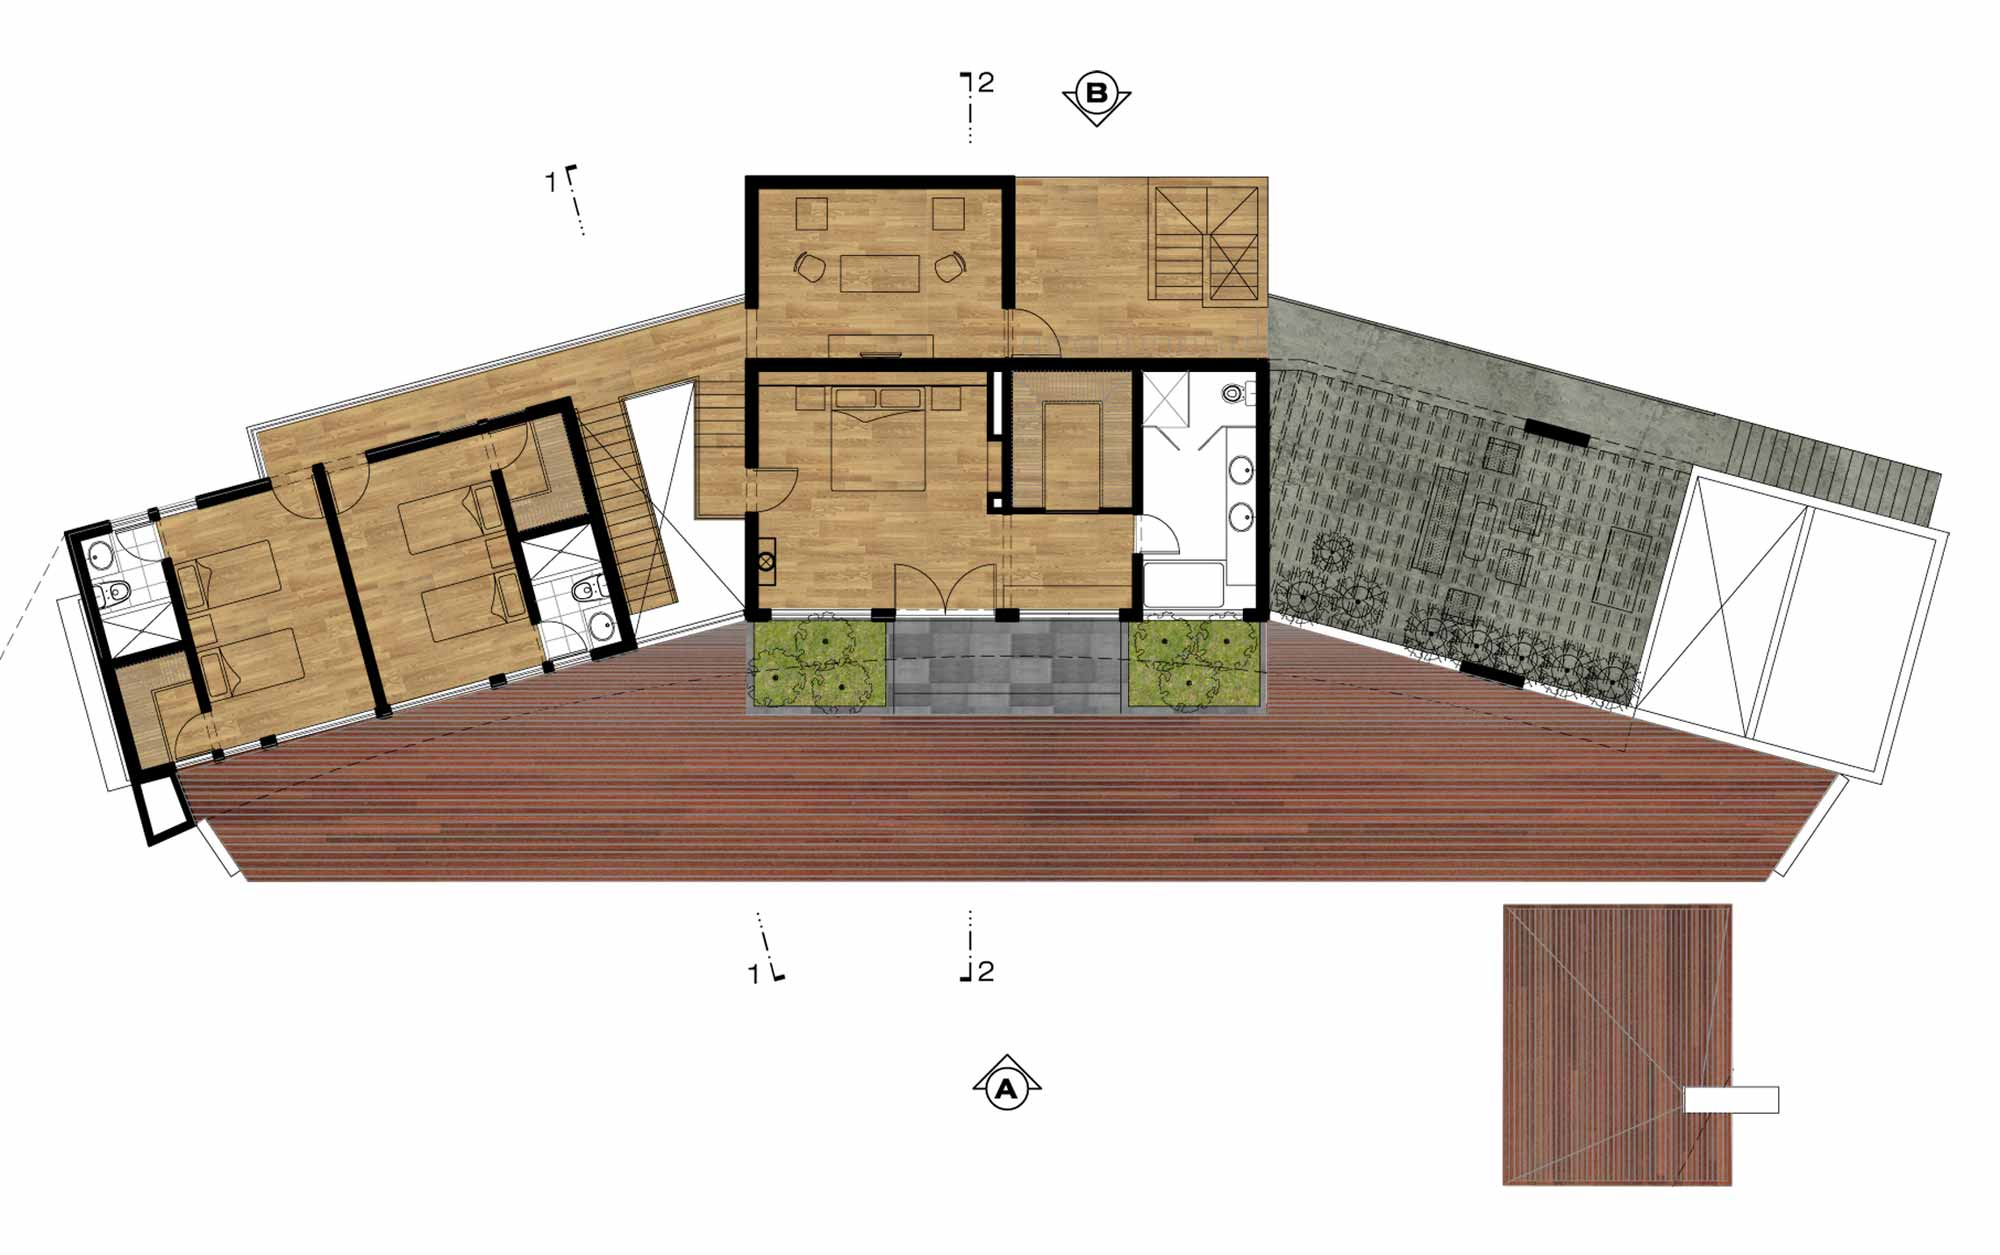 Site Plan, Summer Home in Lima, Peru